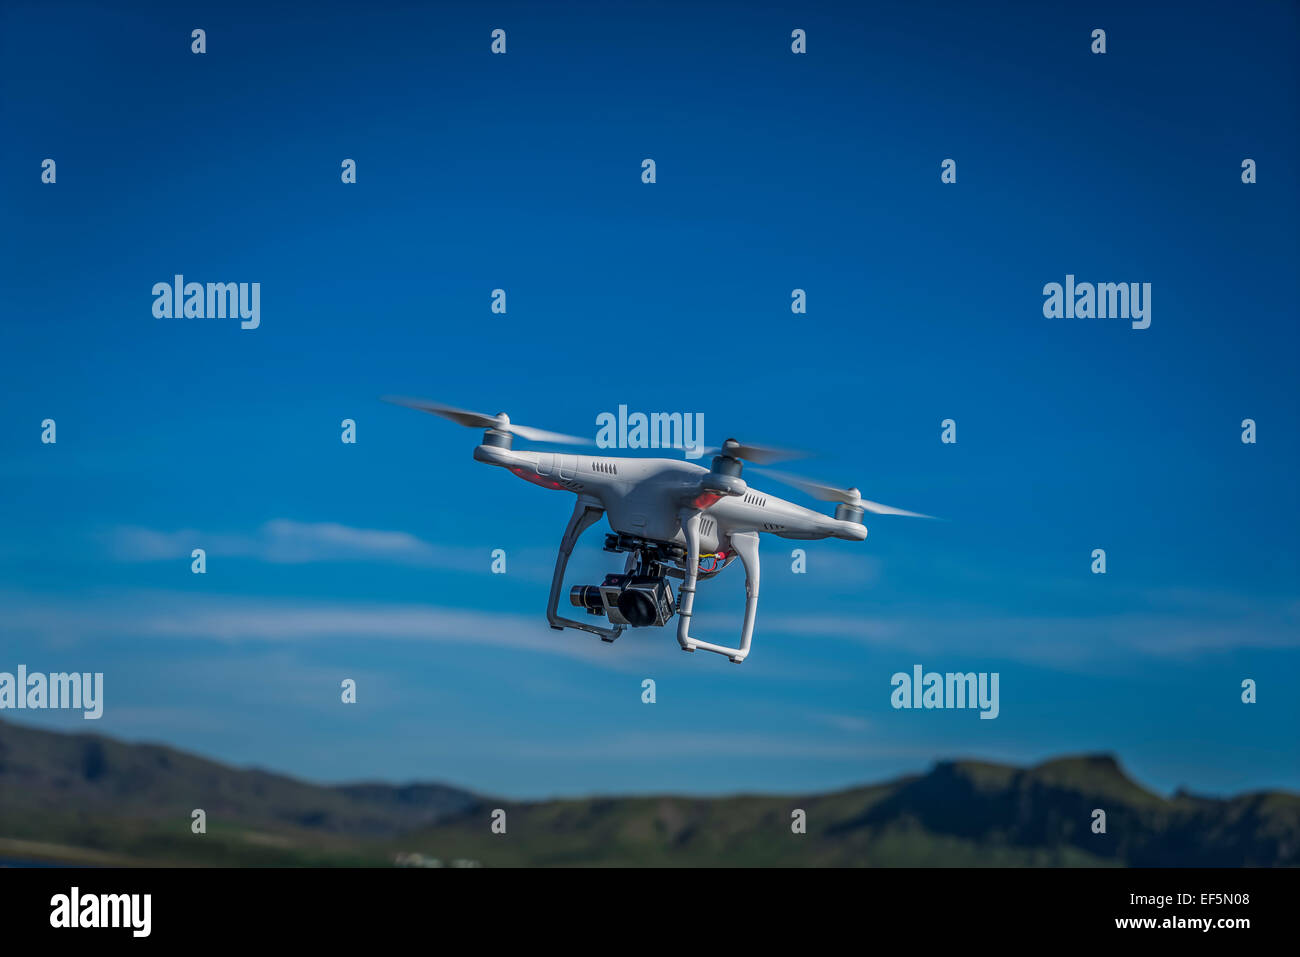 DJI Phantom 2 Vision drone with a Gopro hero 3 camera. - Stock Image